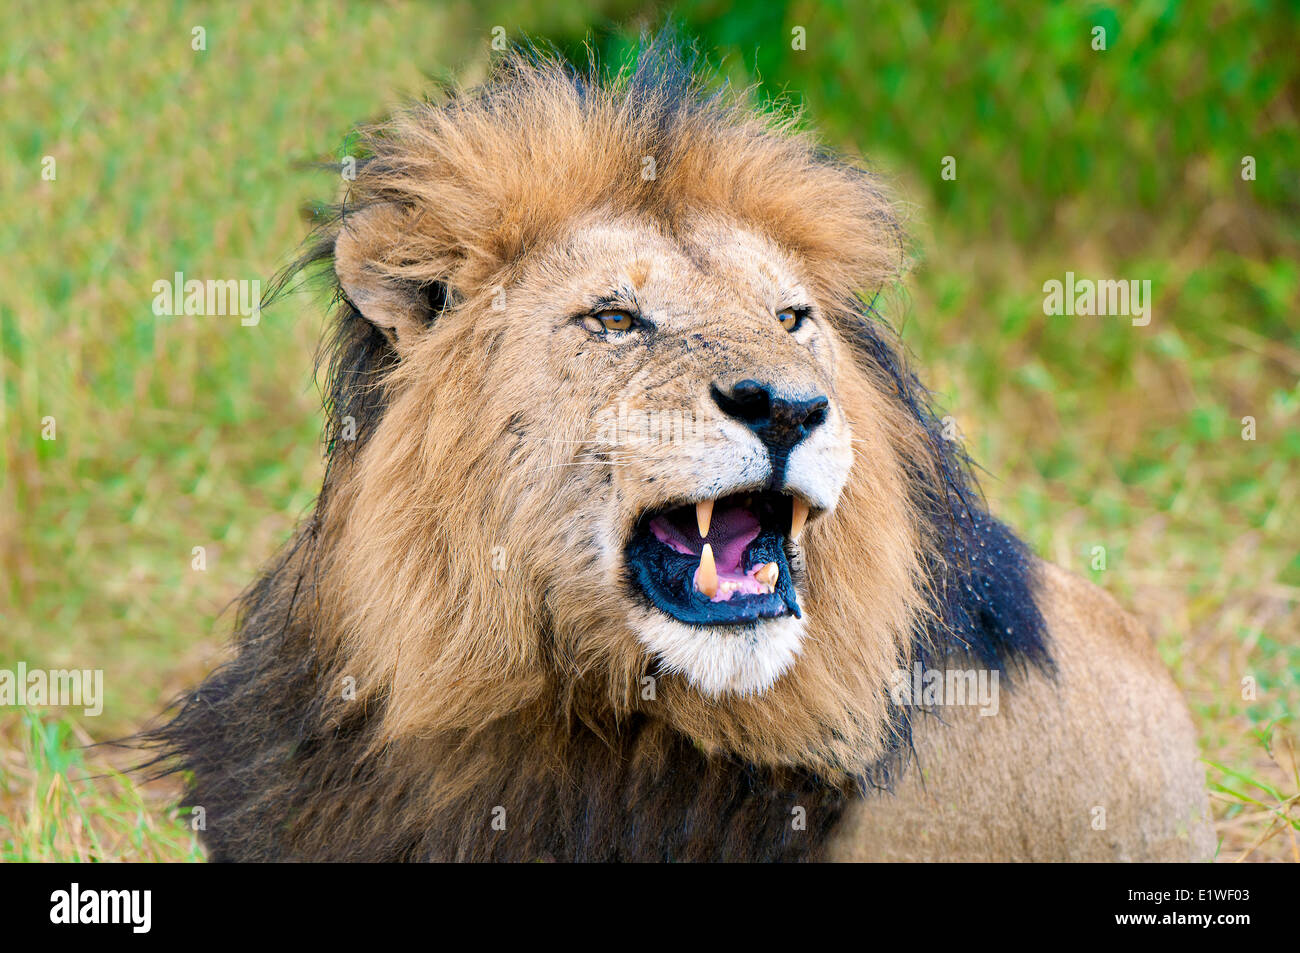 Snarling male African lion (Panthera leo), Masai Mara Game Reserve, Kenya, East Africa - Stock Image